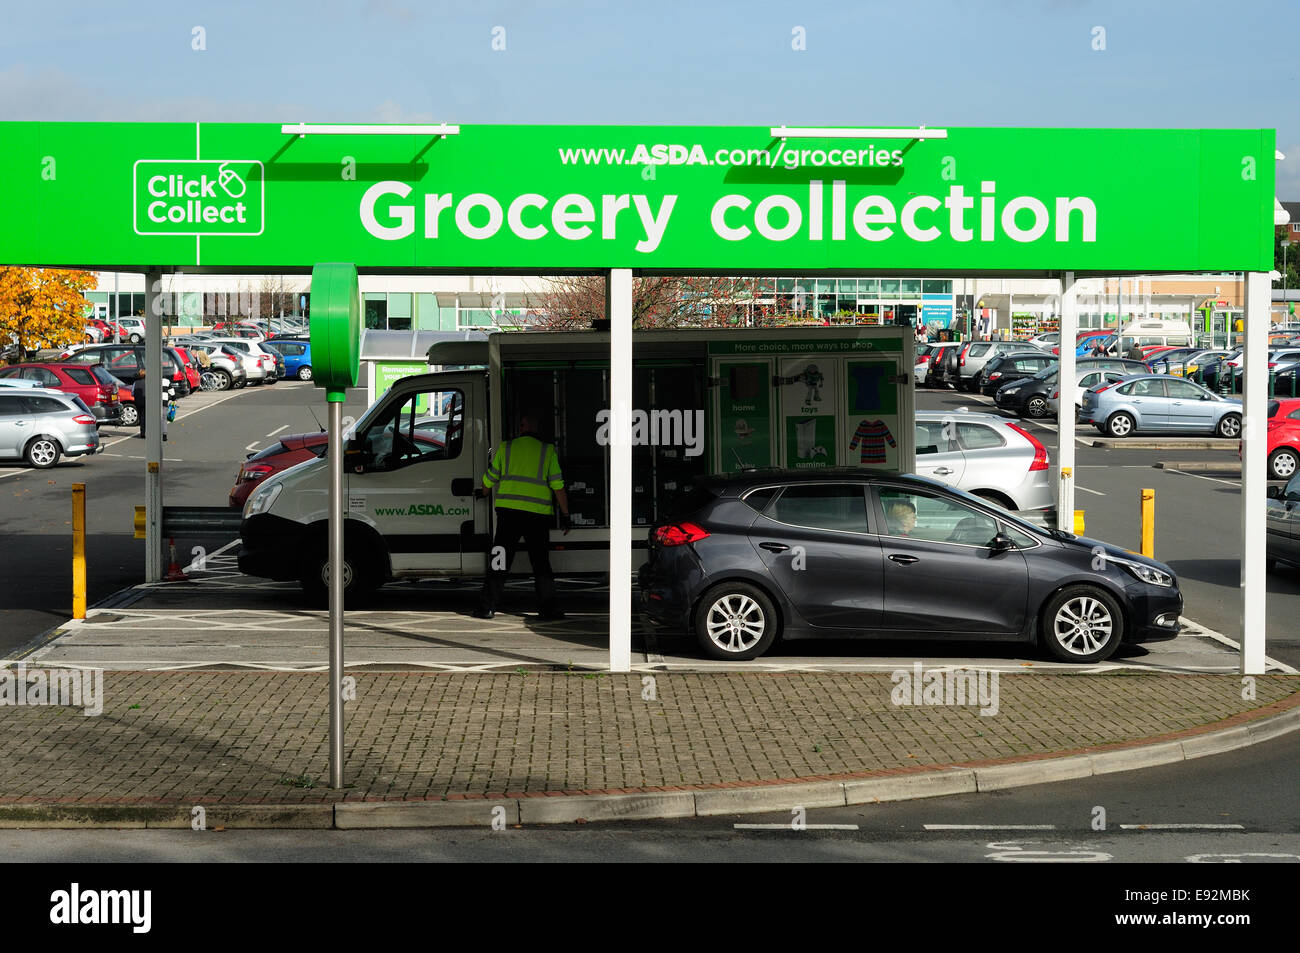 asda supermarket 39 click and collect 39 grocery point mansfield uk stock photo 74433287 alamy. Black Bedroom Furniture Sets. Home Design Ideas